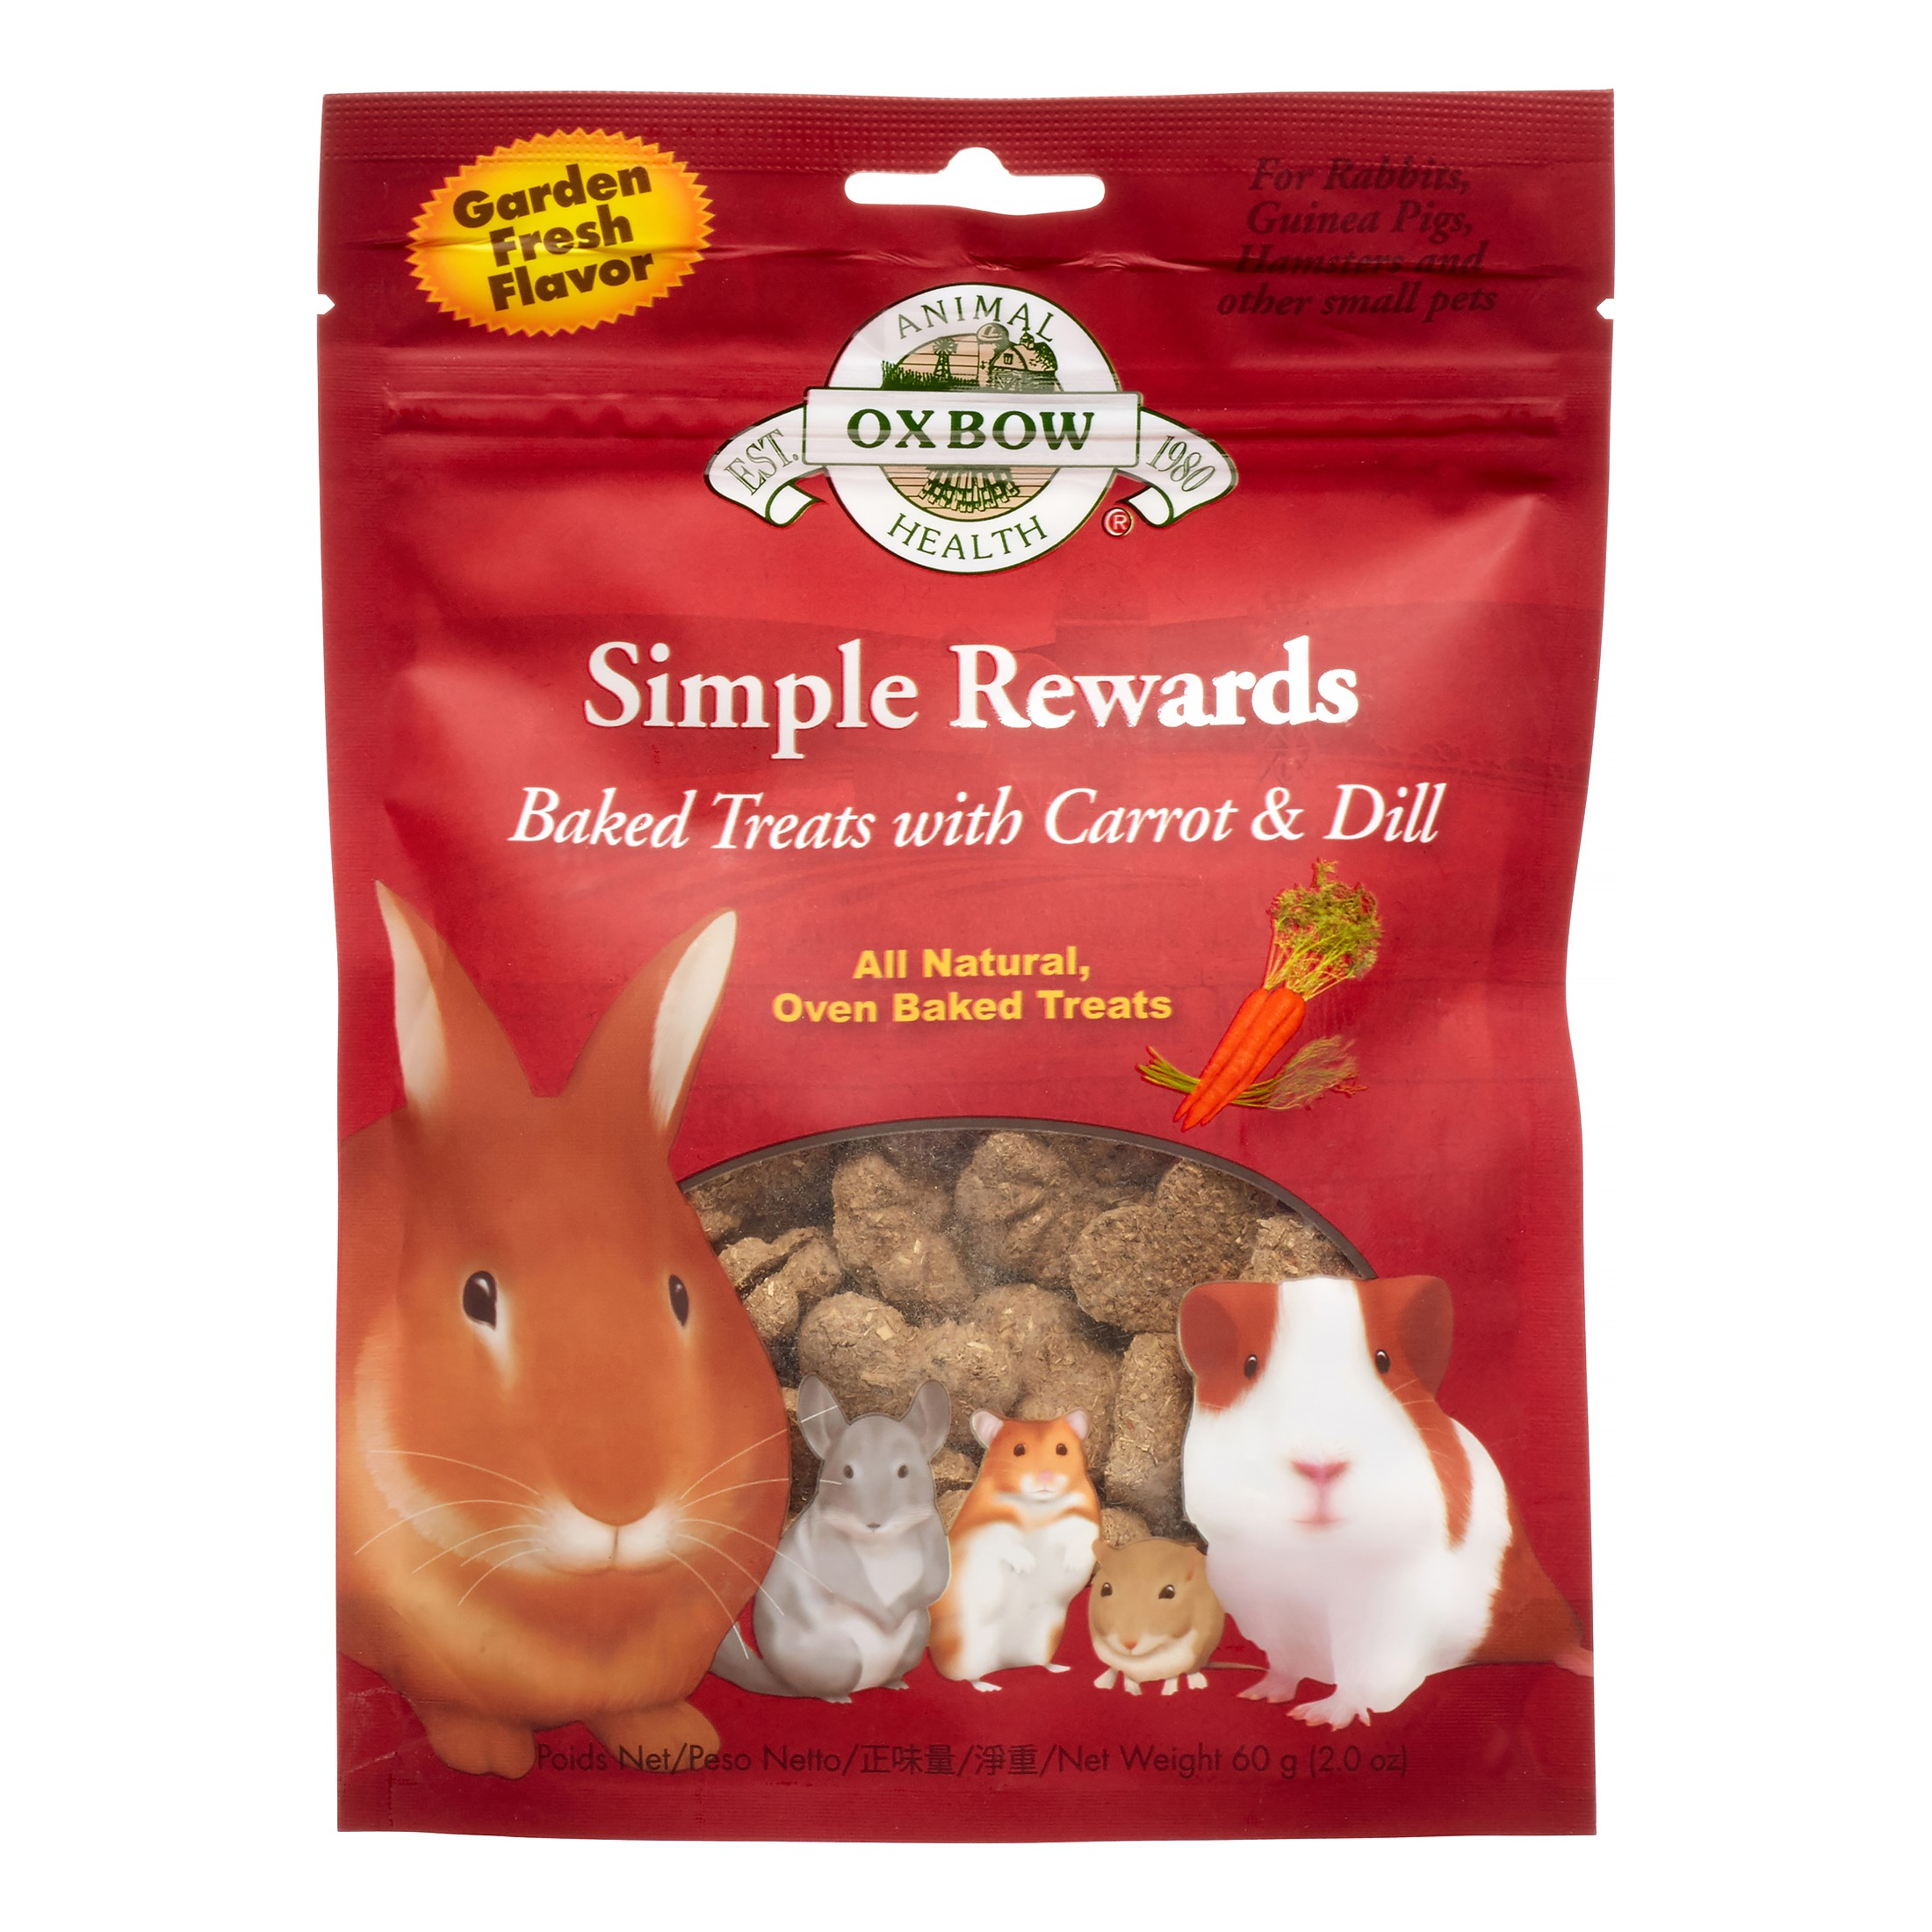 Oxbow Simple Rewards Baked with Carrot & Dill Small Animal Treats, 2 Oz